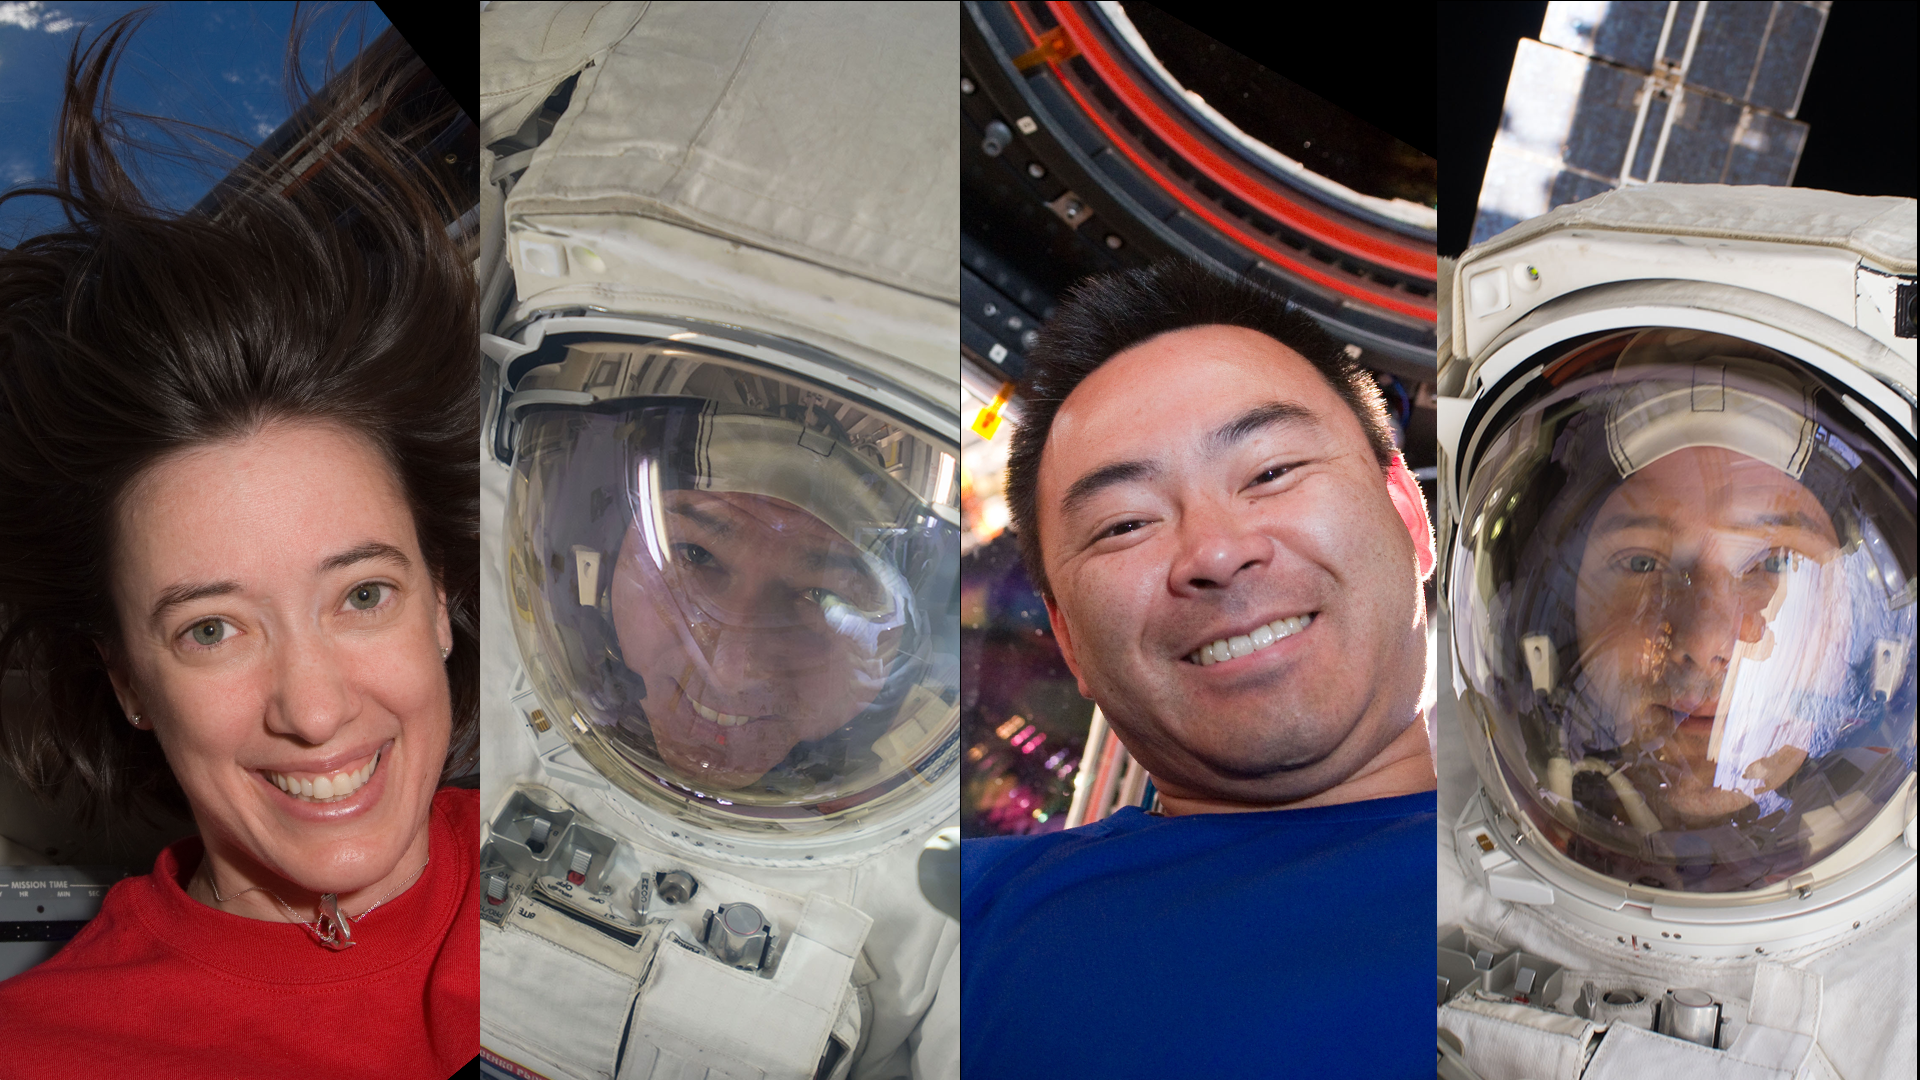 NASA Announces Astronauts to Fly on SpaceX Crew-2 Mission